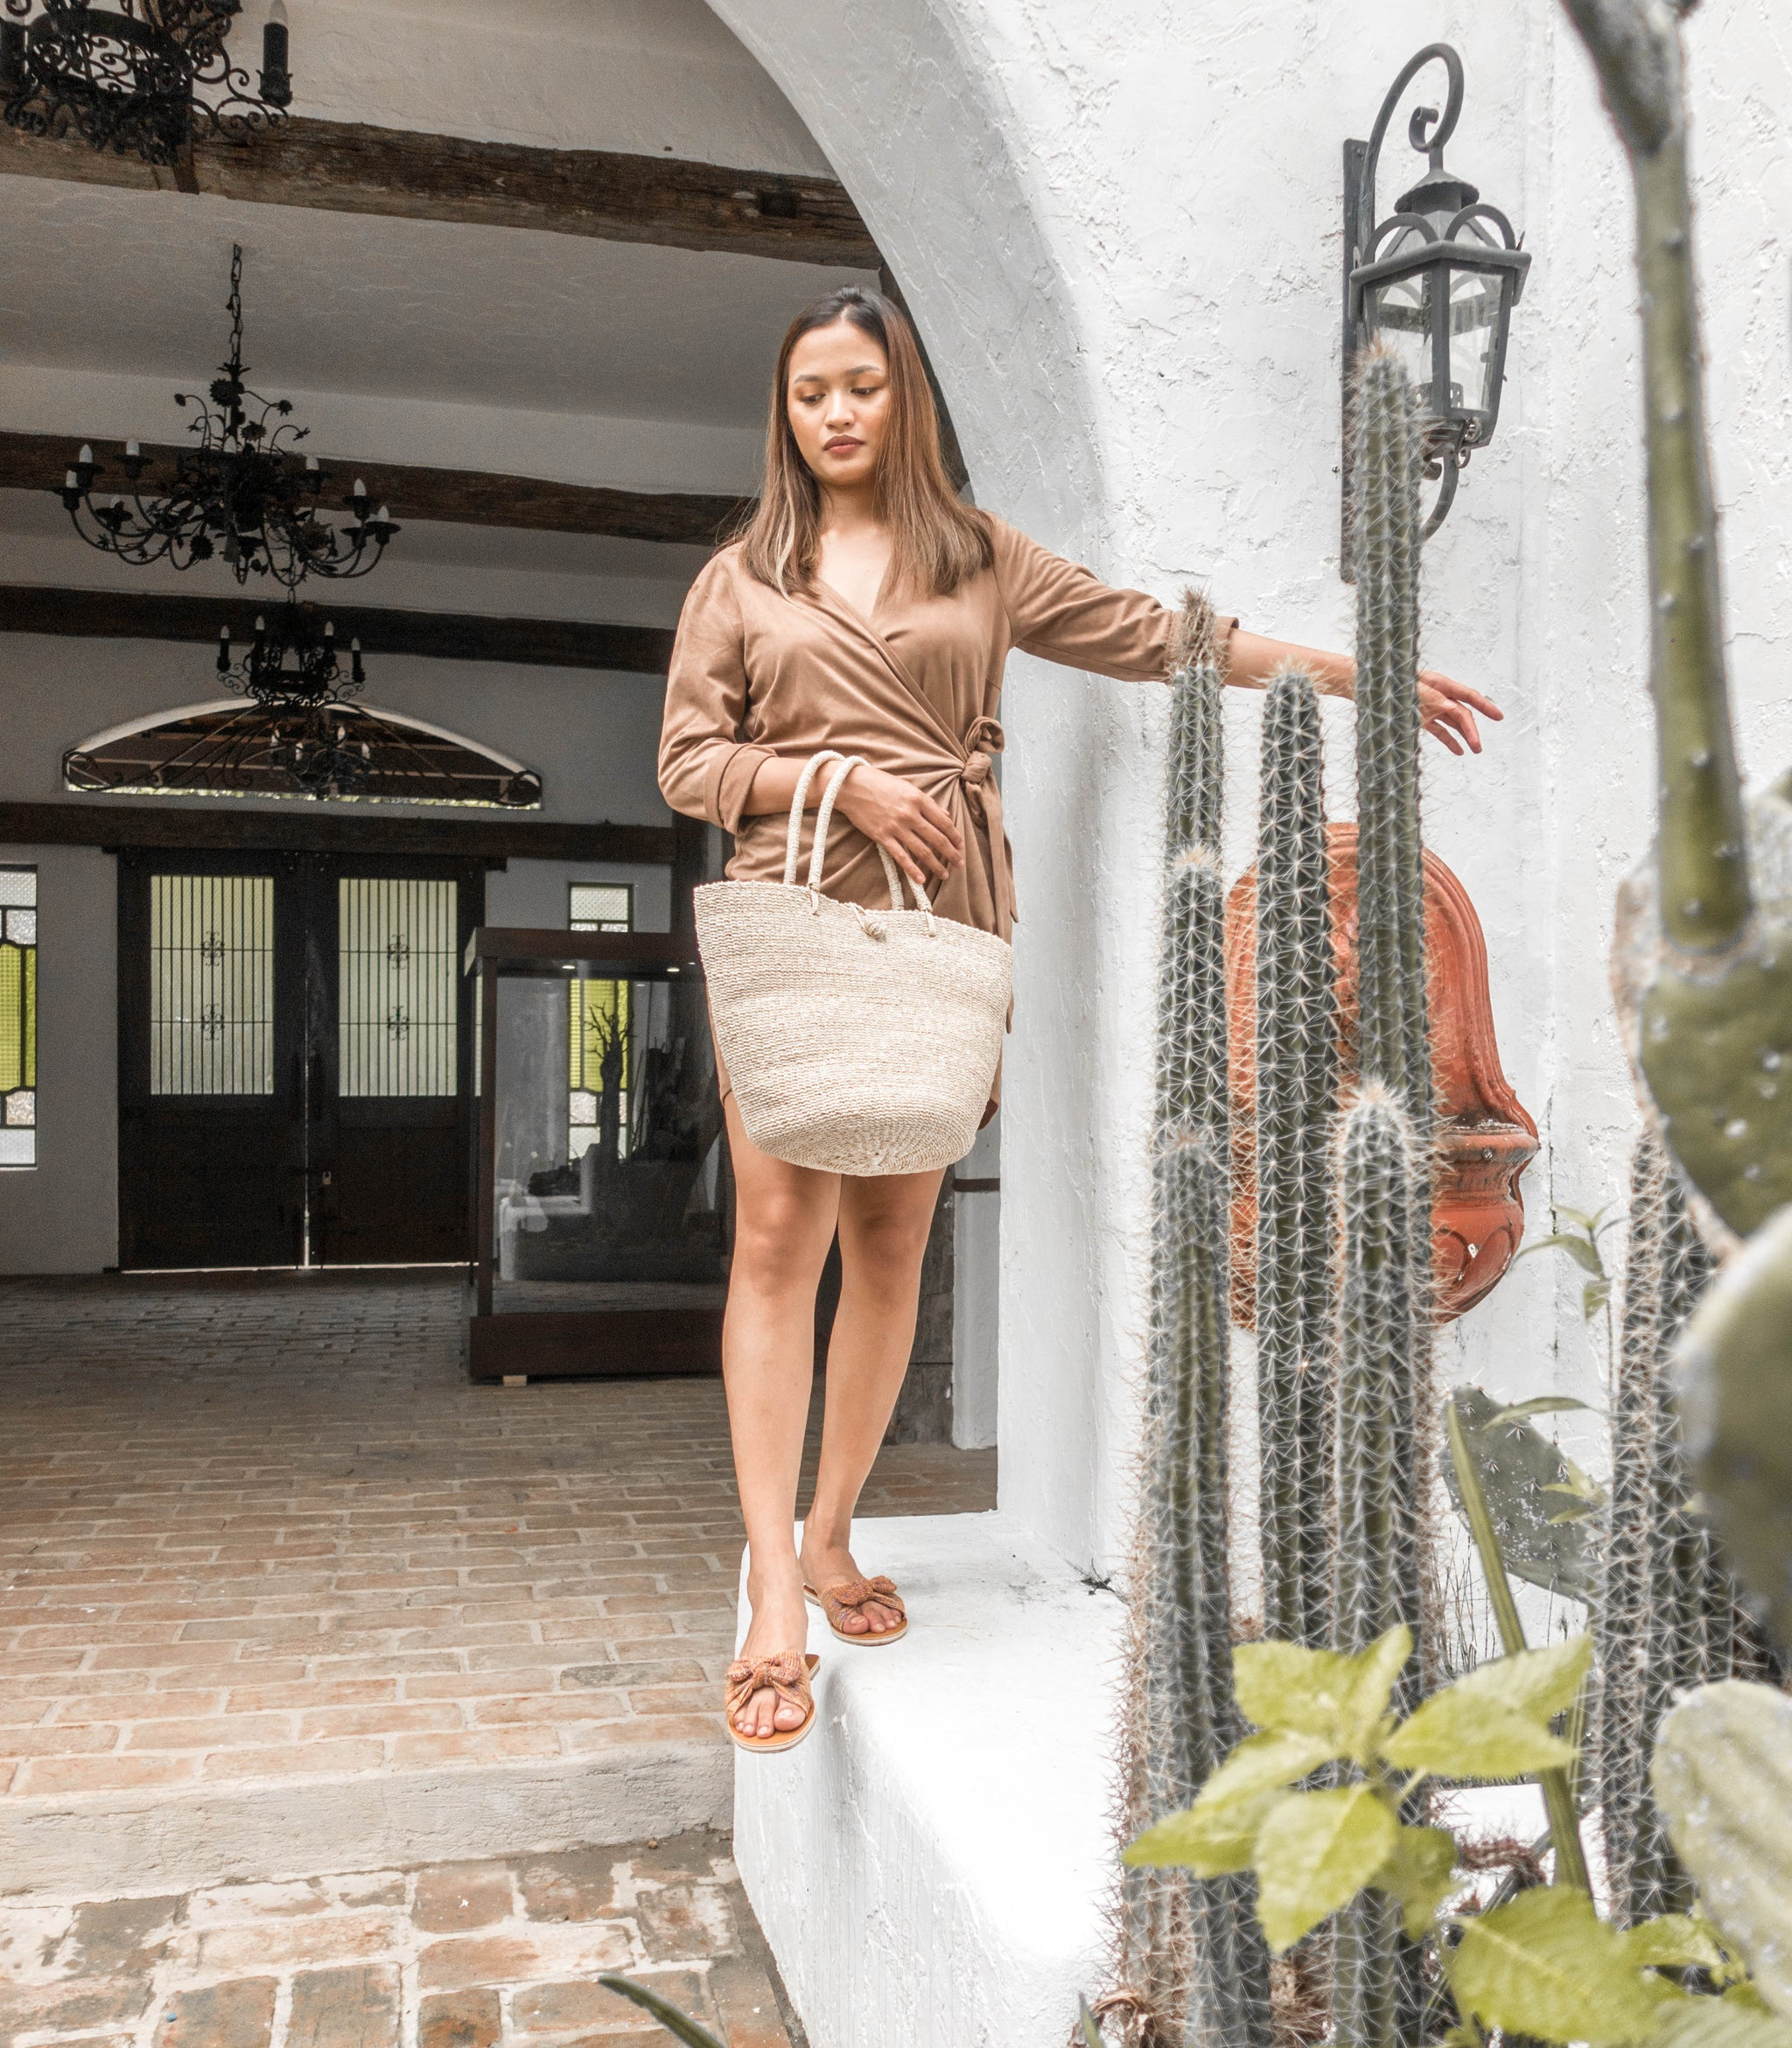 Kamila Tote Bag in Natural Colour by Habin with a model